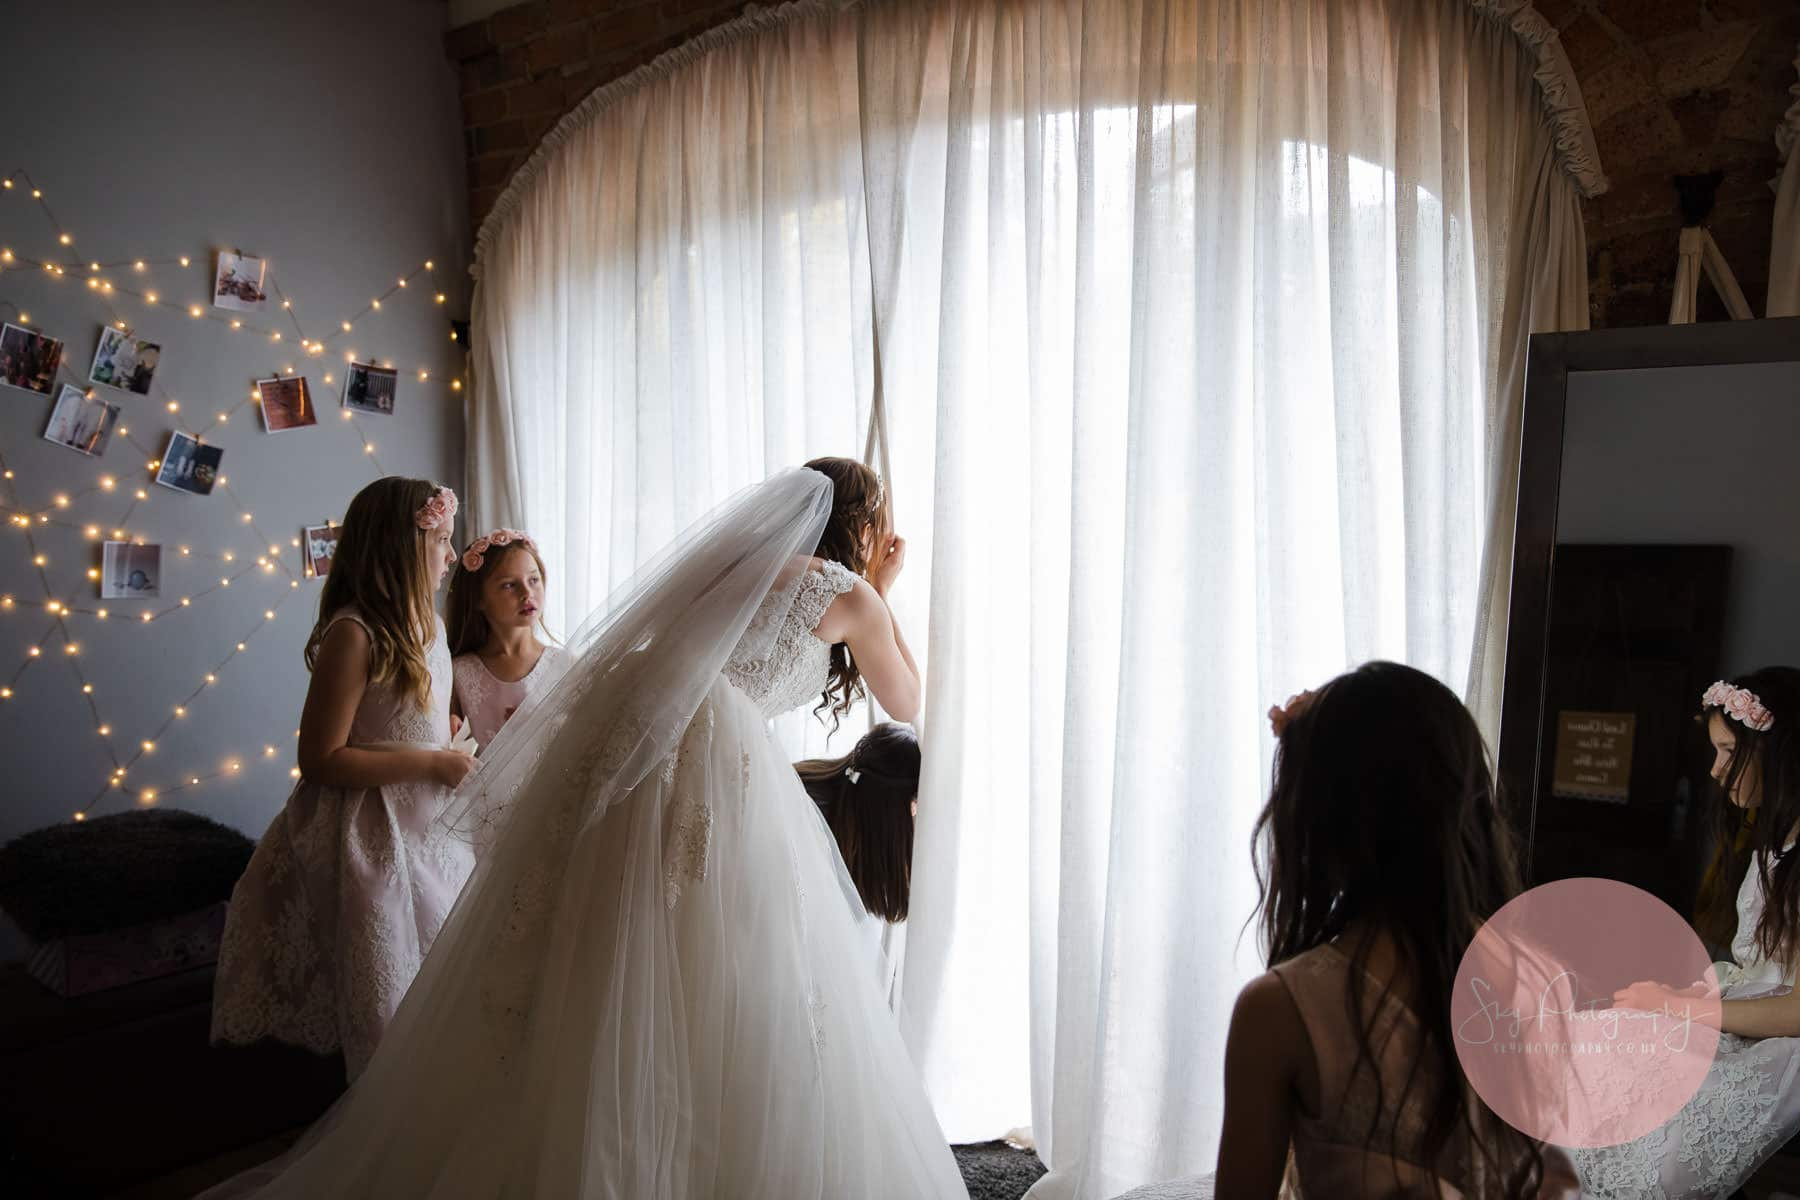 bride catches a sneaky look at her groom through the curtain